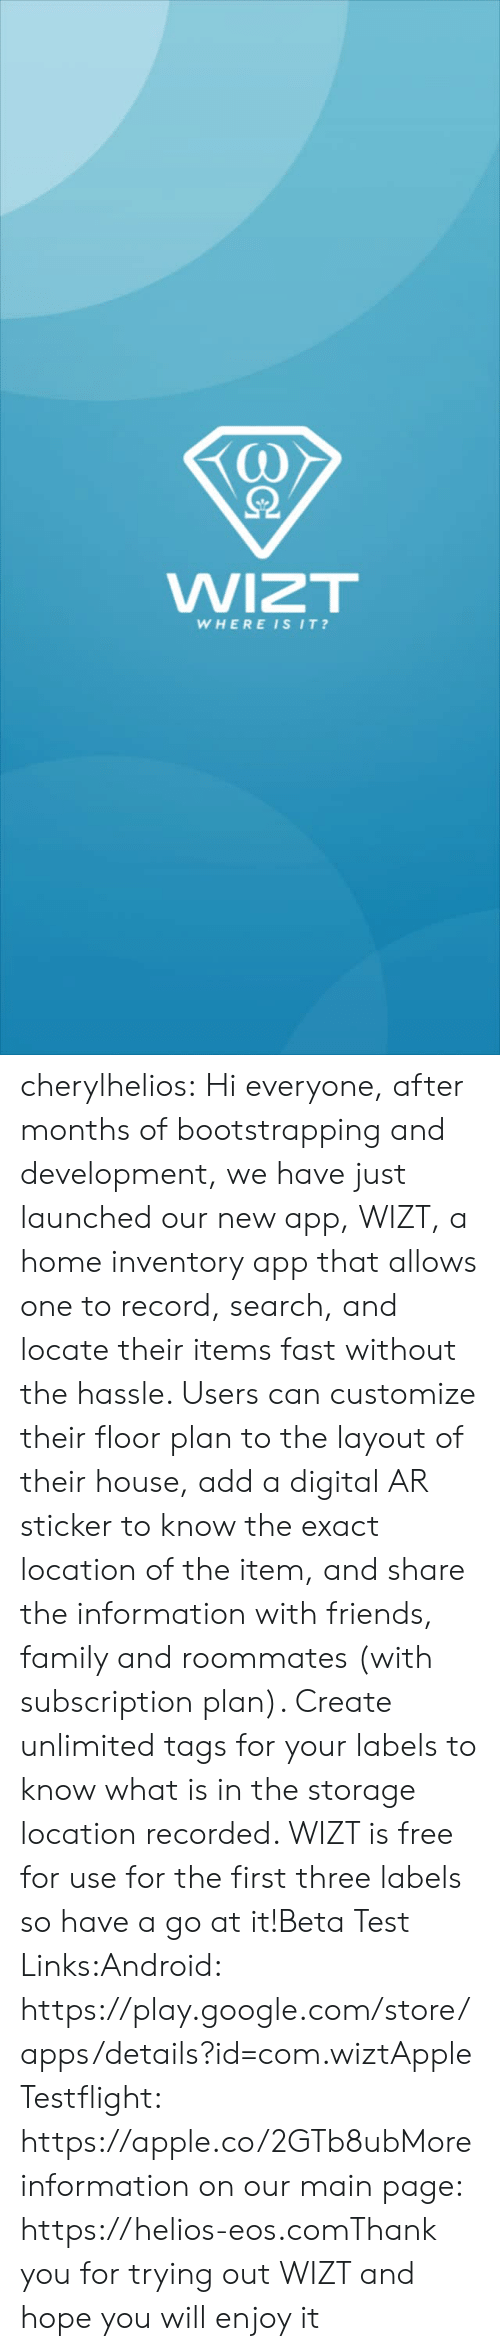 Android, Apple, and Family: WIZT  WHEREISIT? cherylhelios:  Hi everyone, after months of bootstrapping and development, we have just launched our new app, WIZT, a home inventory app that allows one to record, search, and locate their items fast without the hassle. Users can customize their floor plan to the layout of their house, add a digital AR sticker to know the exact location of the item, and share the information with friends, family and roommates (with subscription plan). Create unlimited tags for your labels to know what is in the storage location recorded. WIZT is free for use for the first three labels so have a go at it!Beta Test Links:Android: https://play.google.com/store/apps/details?id=com.wiztApple Testflight: https://apple.co/2GTb8ubMore information on our main page: https://helios-eos.comThank you for trying out WIZT and hope you will enjoy it